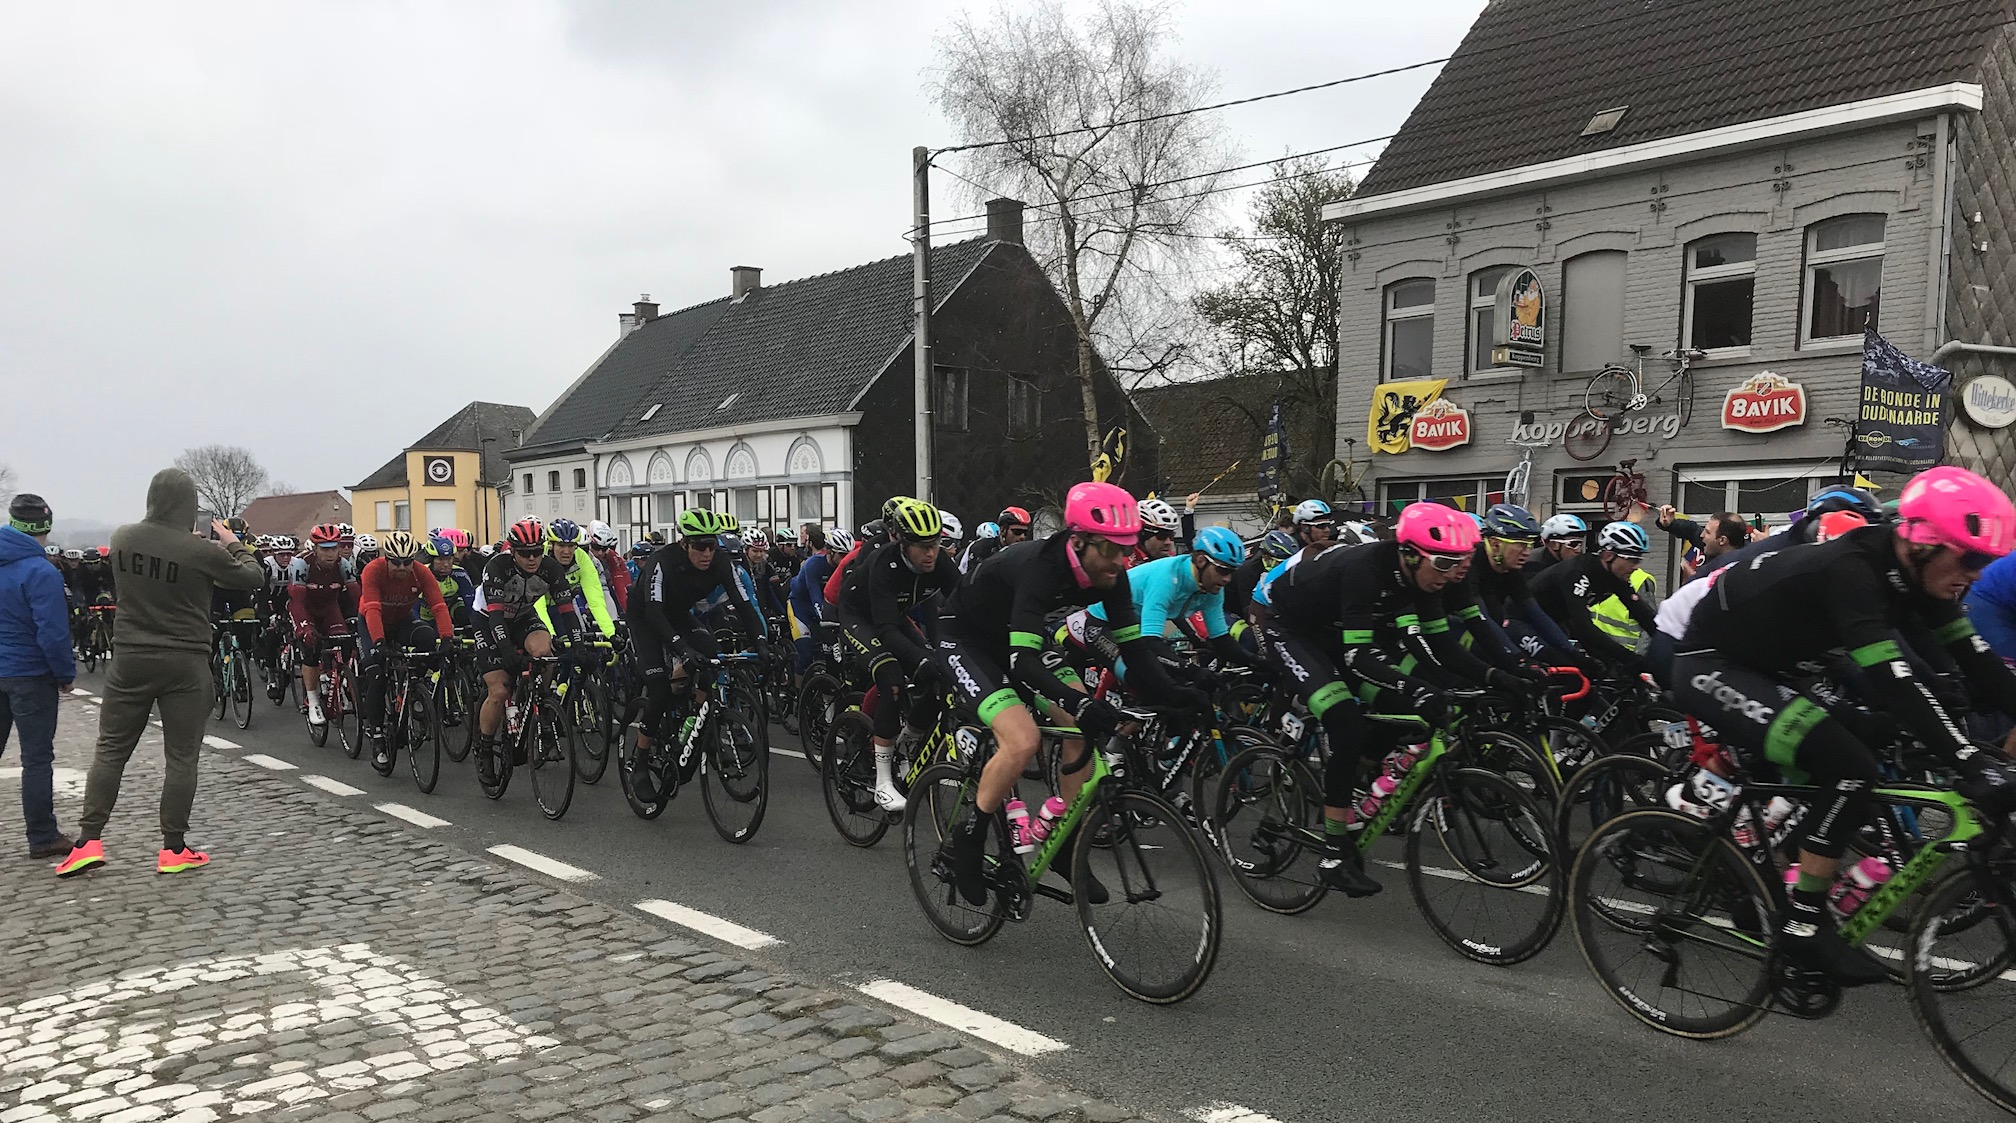 BiciSport in Flanders 18 @ 1 Apr - the Ronde Men's peloton passes the Koppenberg Cafe at Melden through the race Feeding Zone.